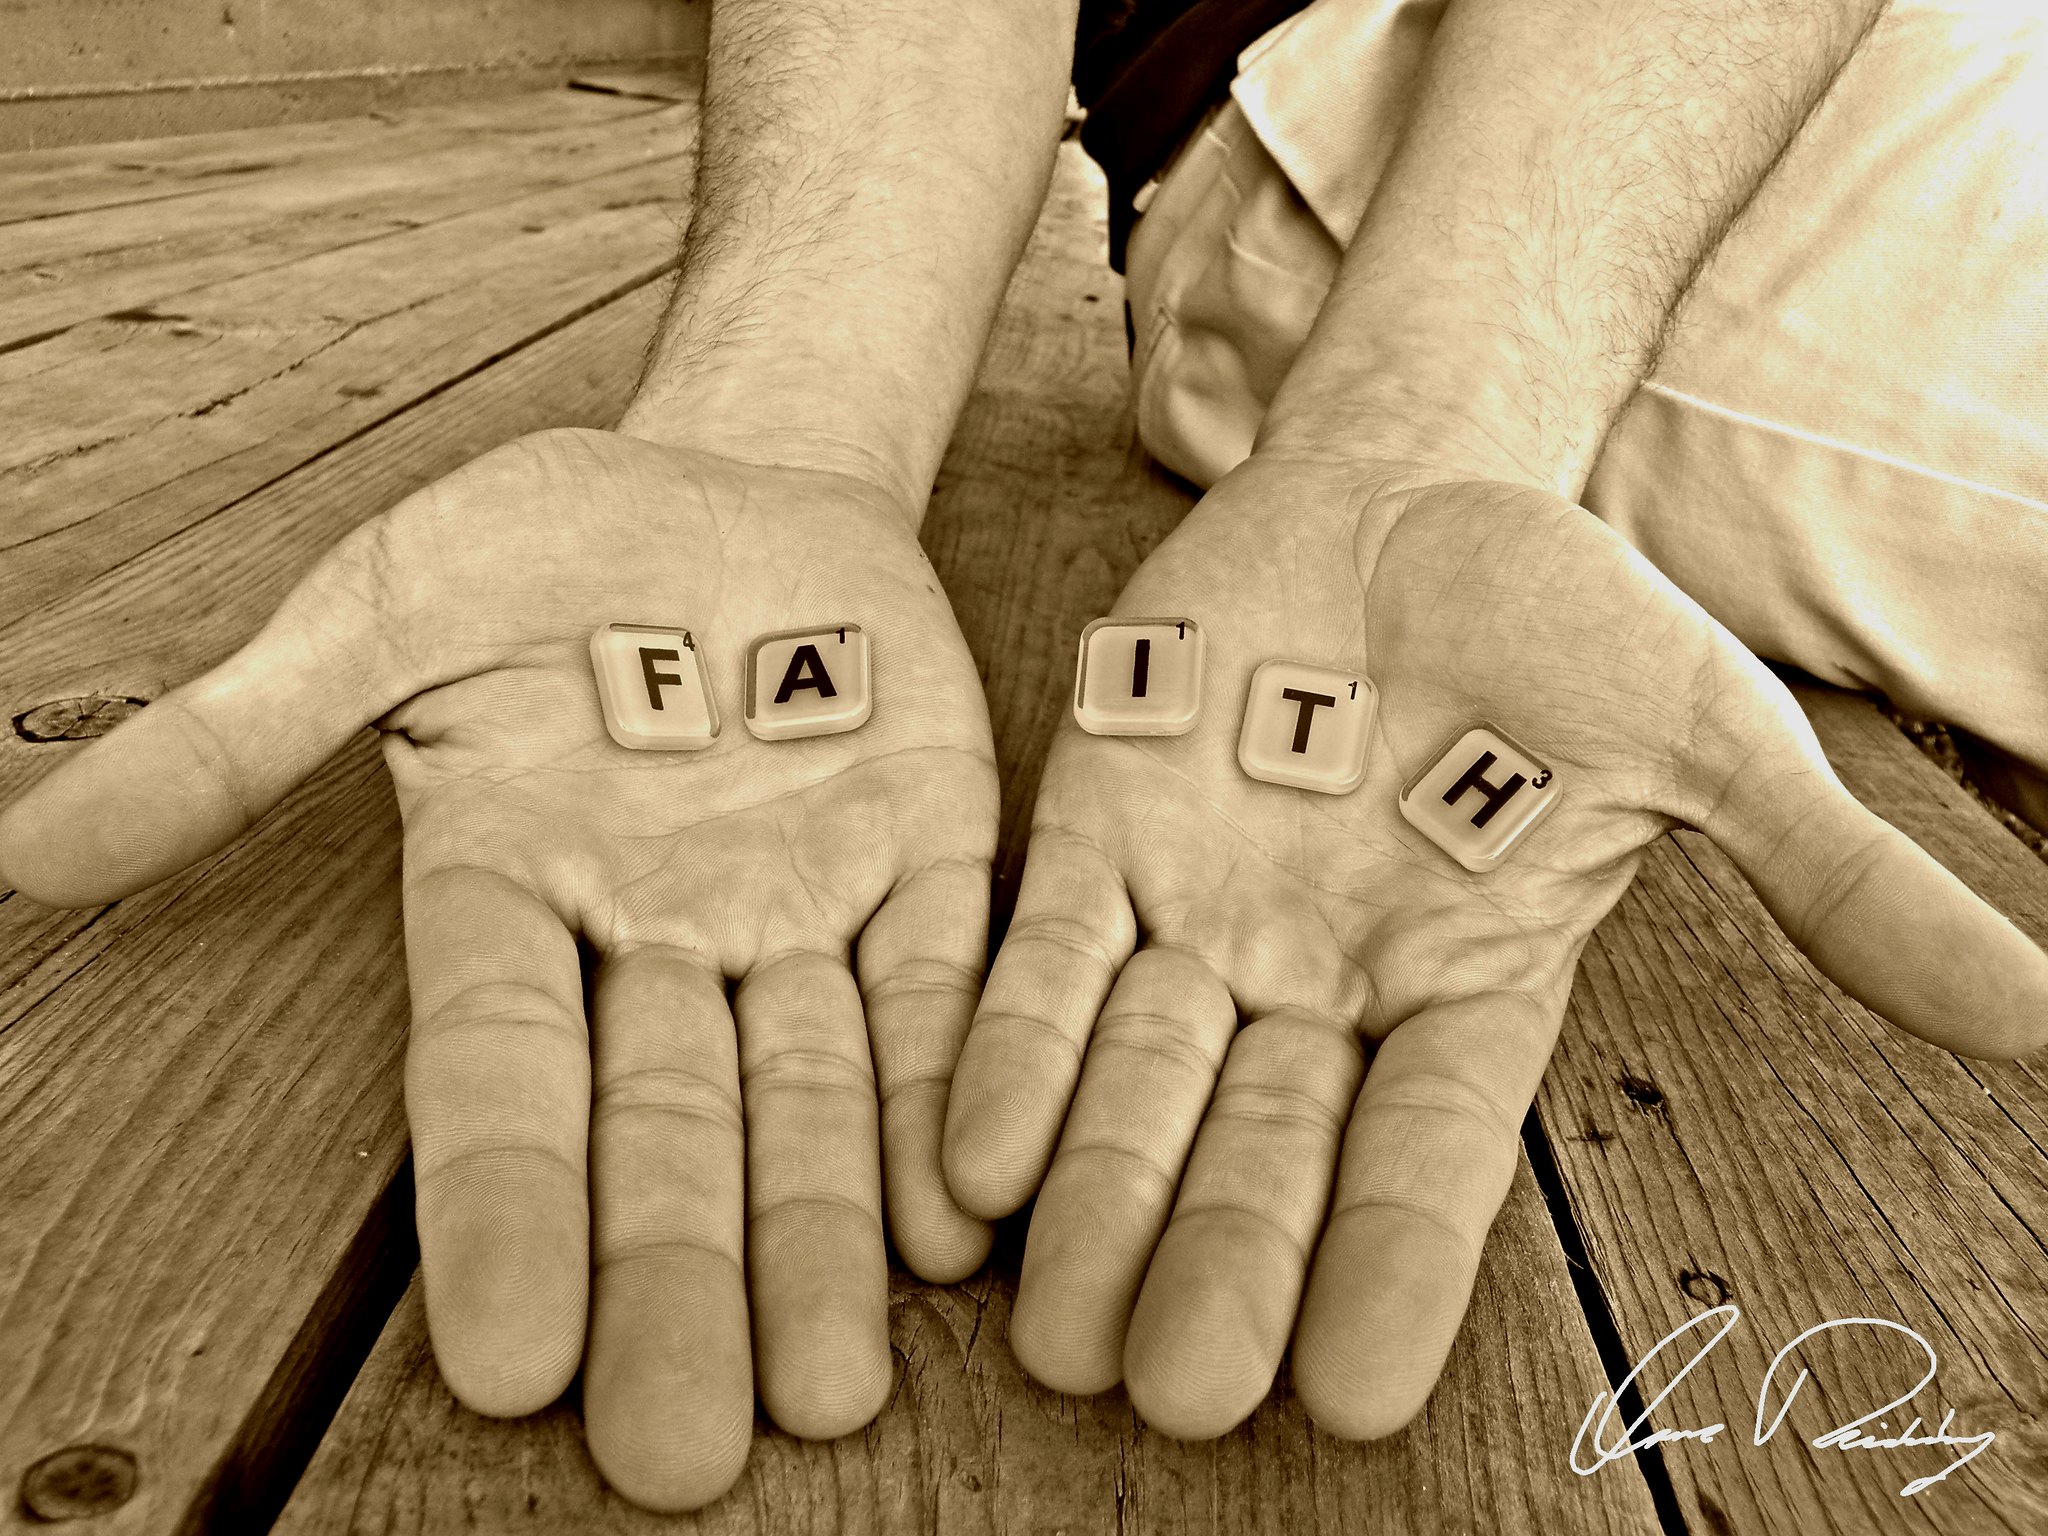 faith, hands, hand, faithful, sepia, adult, background, beautiful, belief, black, care, christ, christian, christianity, closeup, concept, concepts, conceptual, emotion, faith, family, female, finger, fingers, forgiveness, gesture, giving, god, guidance, hand, hands, happiness, heart, help, hold, holy, hope, human, isolated, jesus, life, light, love, male, man, nature, people, person, pray, prayer, religion, religious, romance, romantic, shape, sign, sky, spirit, spirituality, symbol, together, touch, trust, two, valentine, white, woman, worship, young